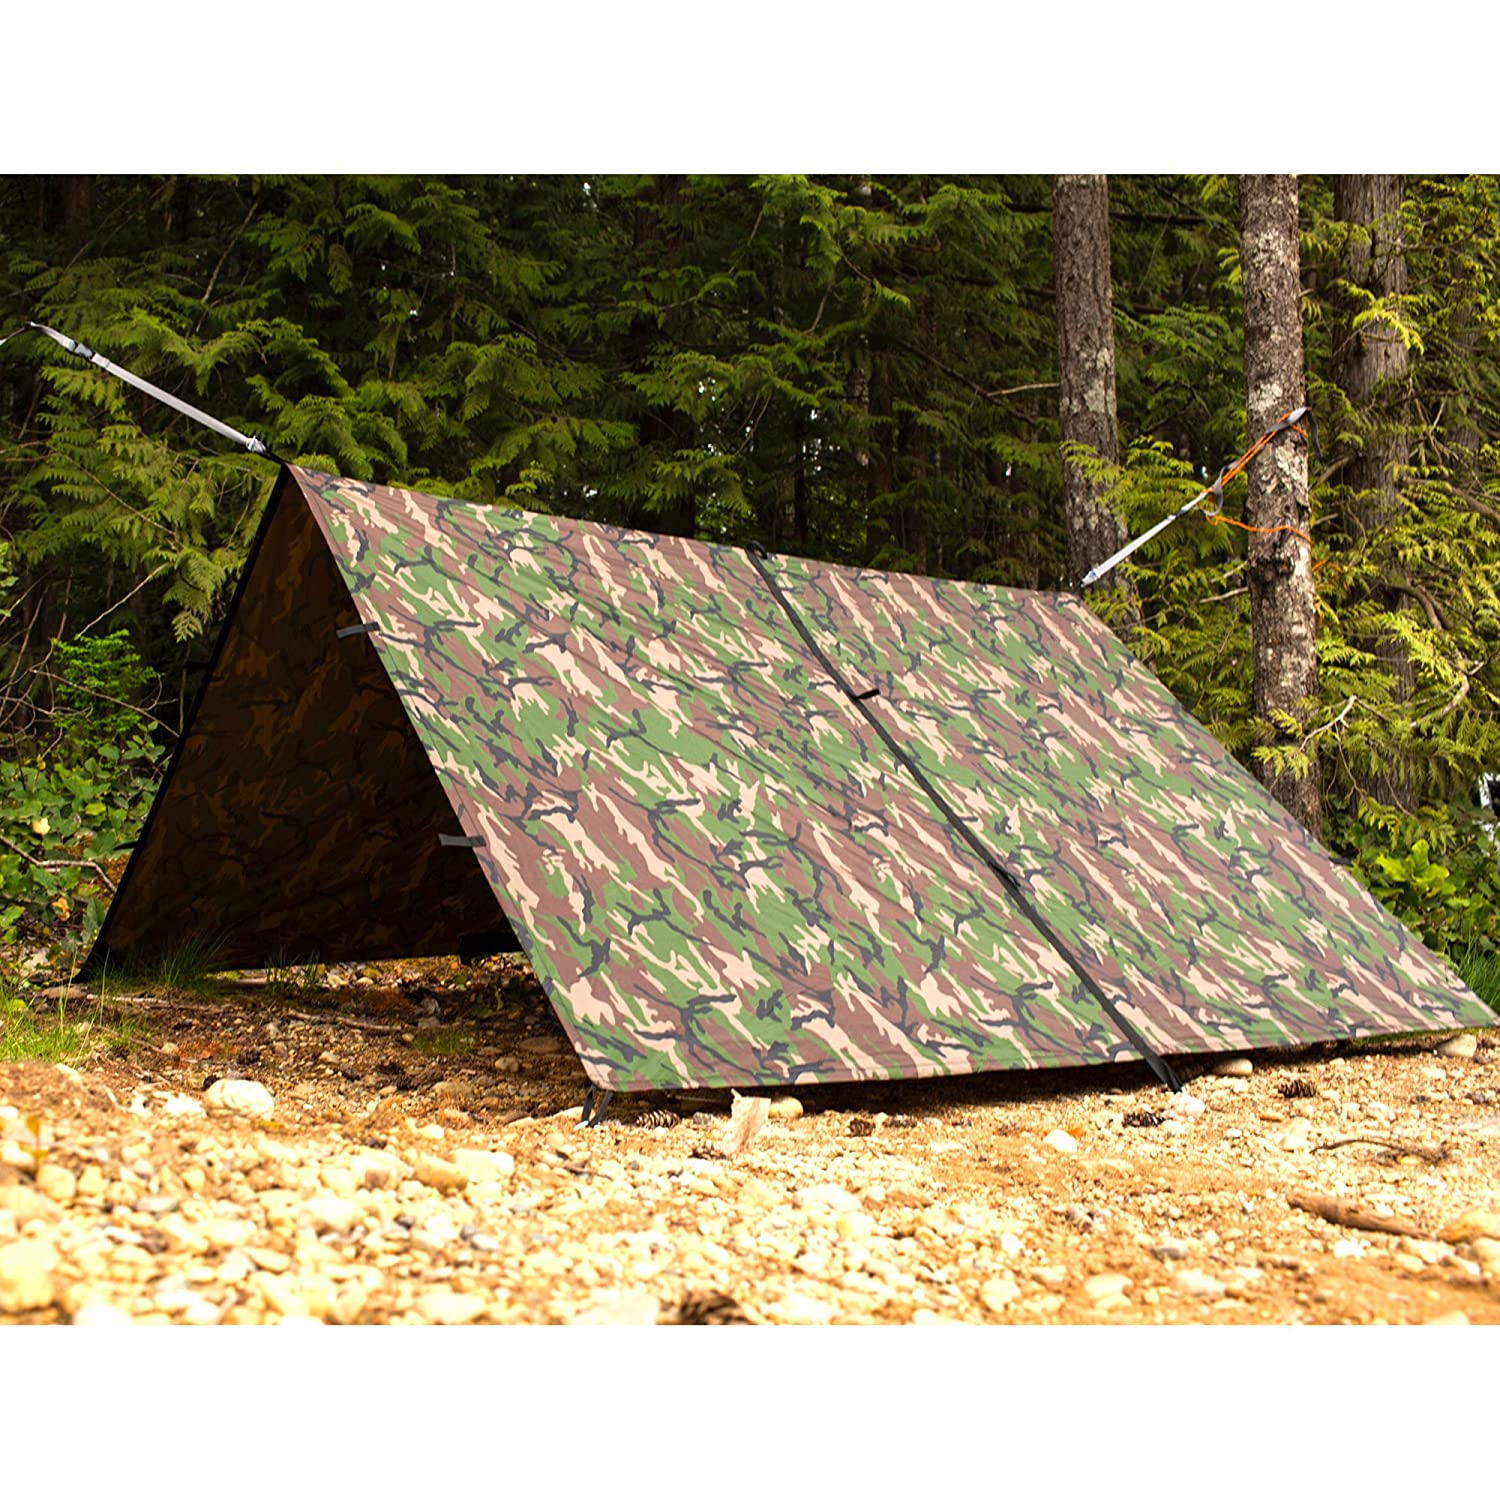 Amazon.com  Aqua Quest Defender Tarp Medium 10 x 7 ft Camo - Heavy Duty Waterproof Nylon Shelter - Compact Versatile u0026 Durable  Sports u0026 Outdoors  sc 1 st  Amazon.com & Amazon.com : Aqua Quest Defender Tarp Medium 10 x 7 ft Camo ...